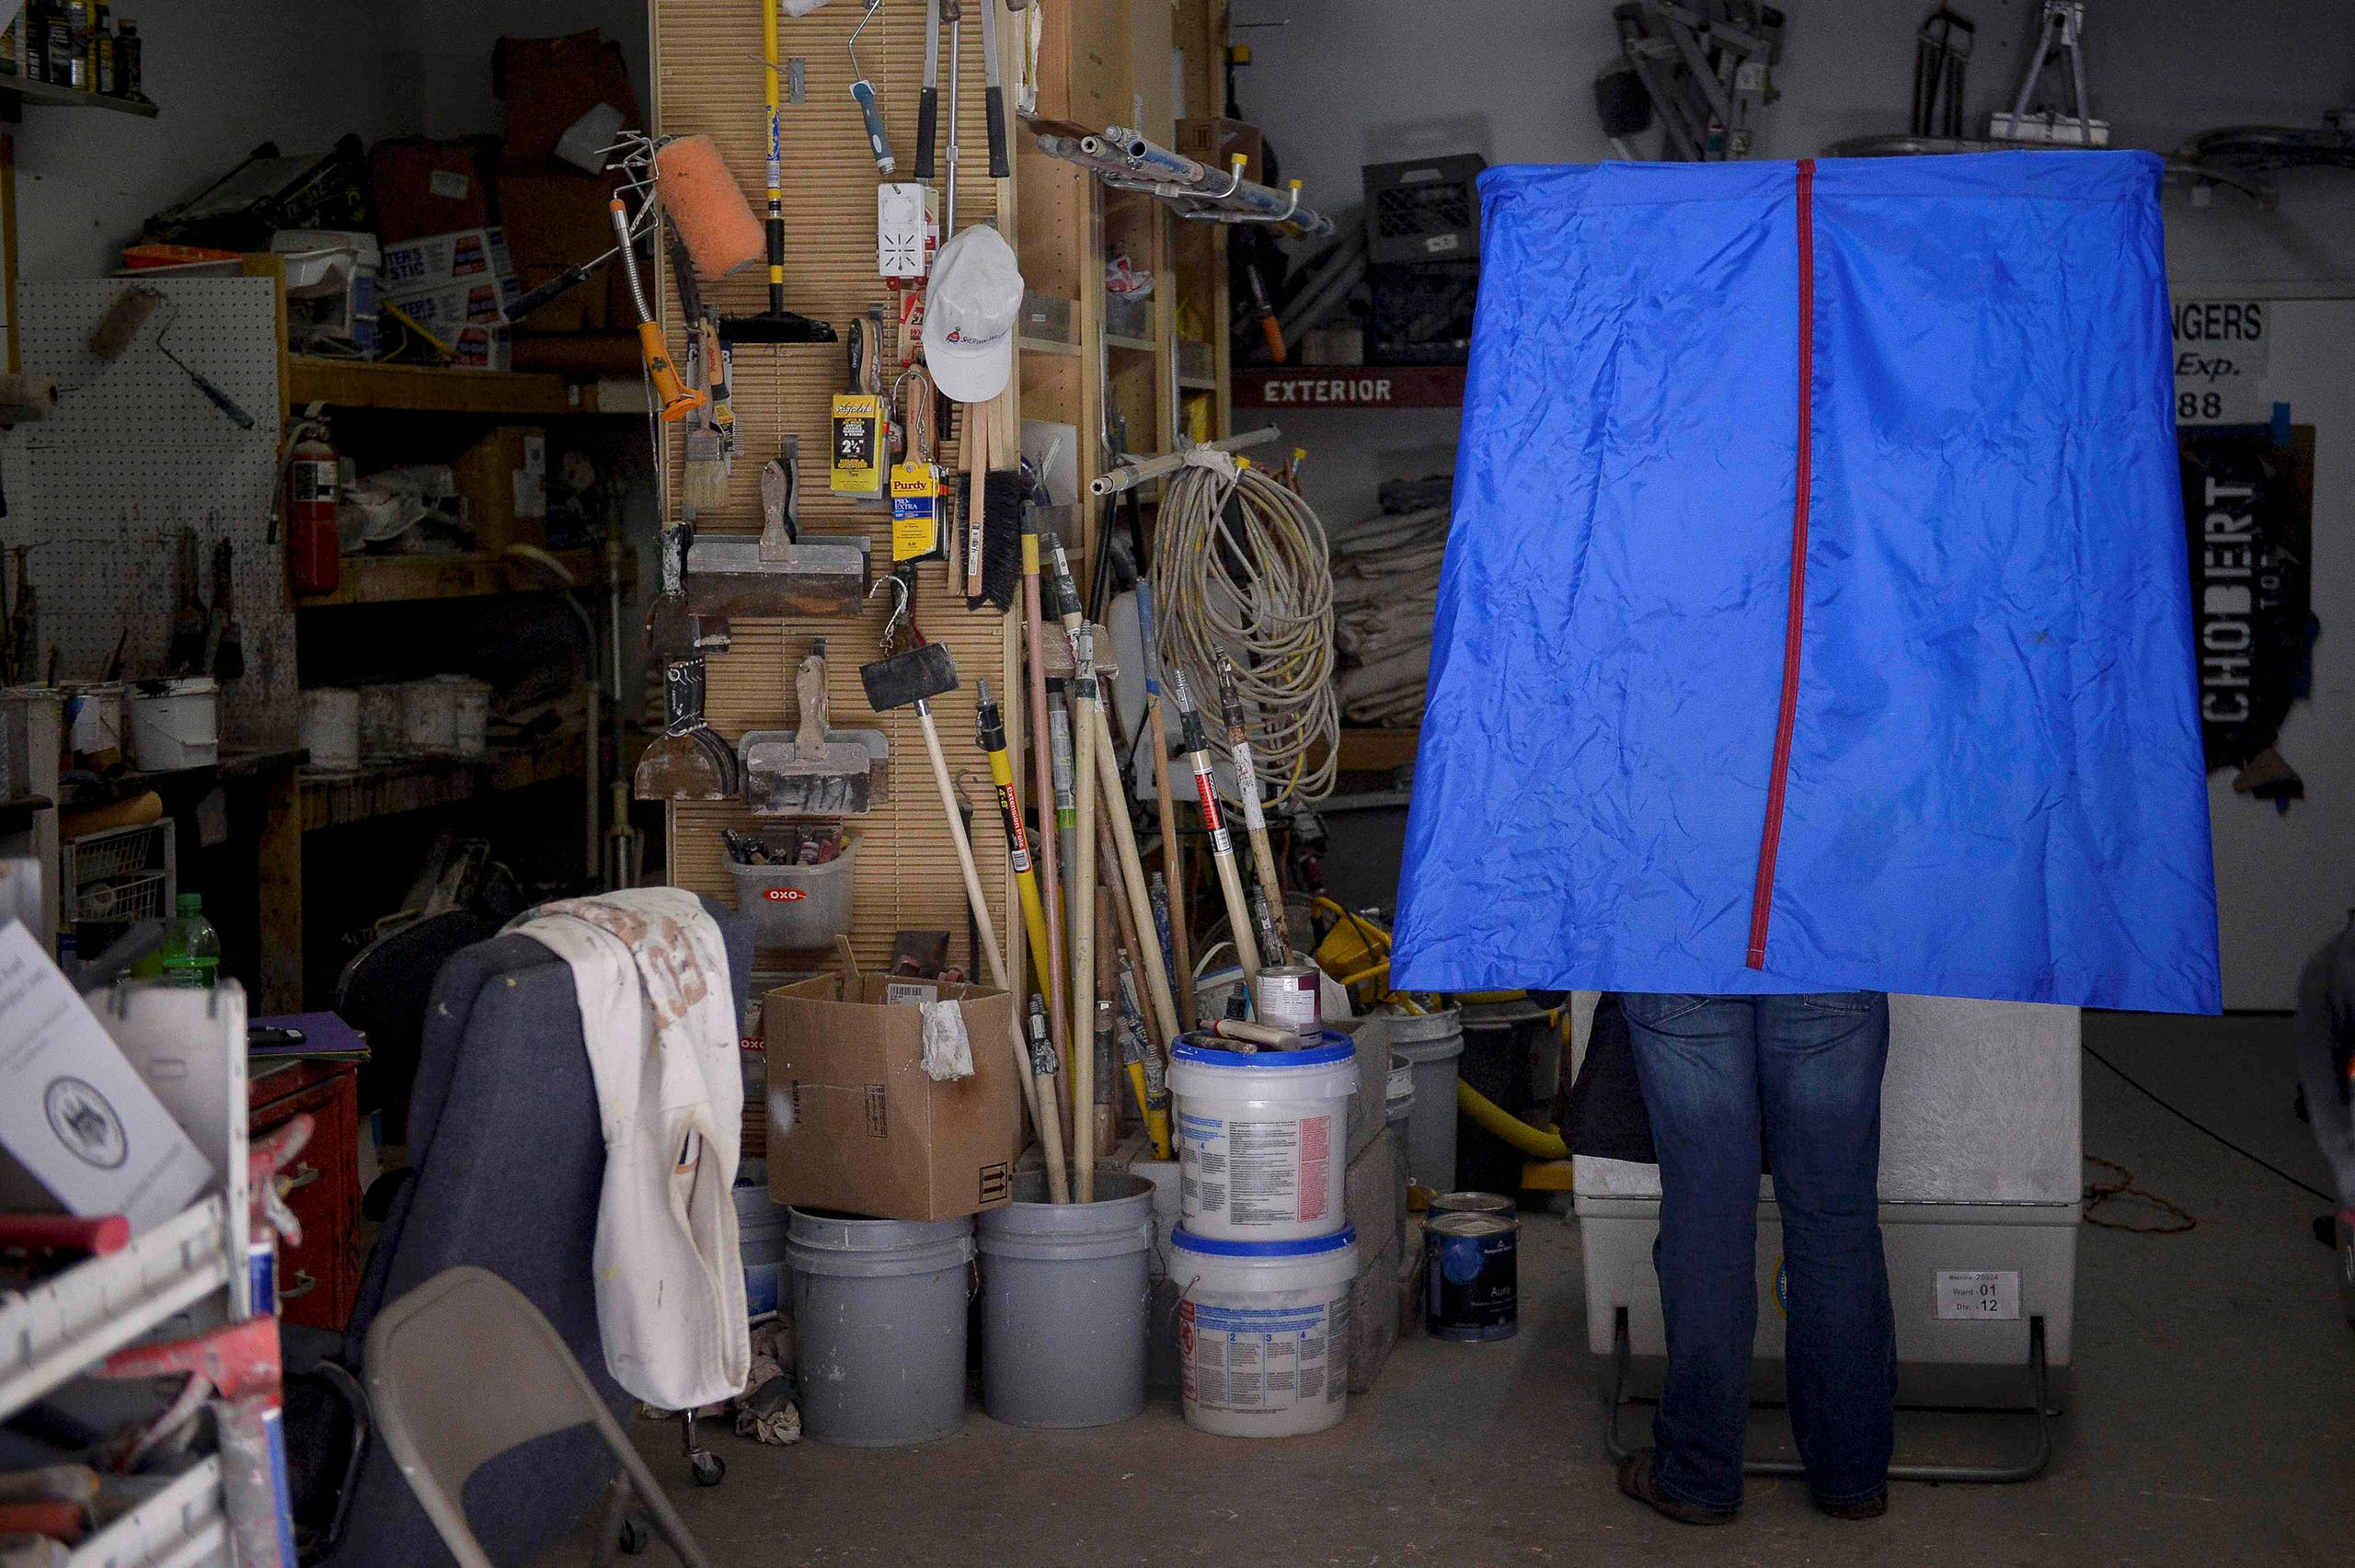 A voter casts his ballot inside the garage of Chobert Decorators during the U.S. presidential election on Nov. 8, 2016, in in Philadelphia.